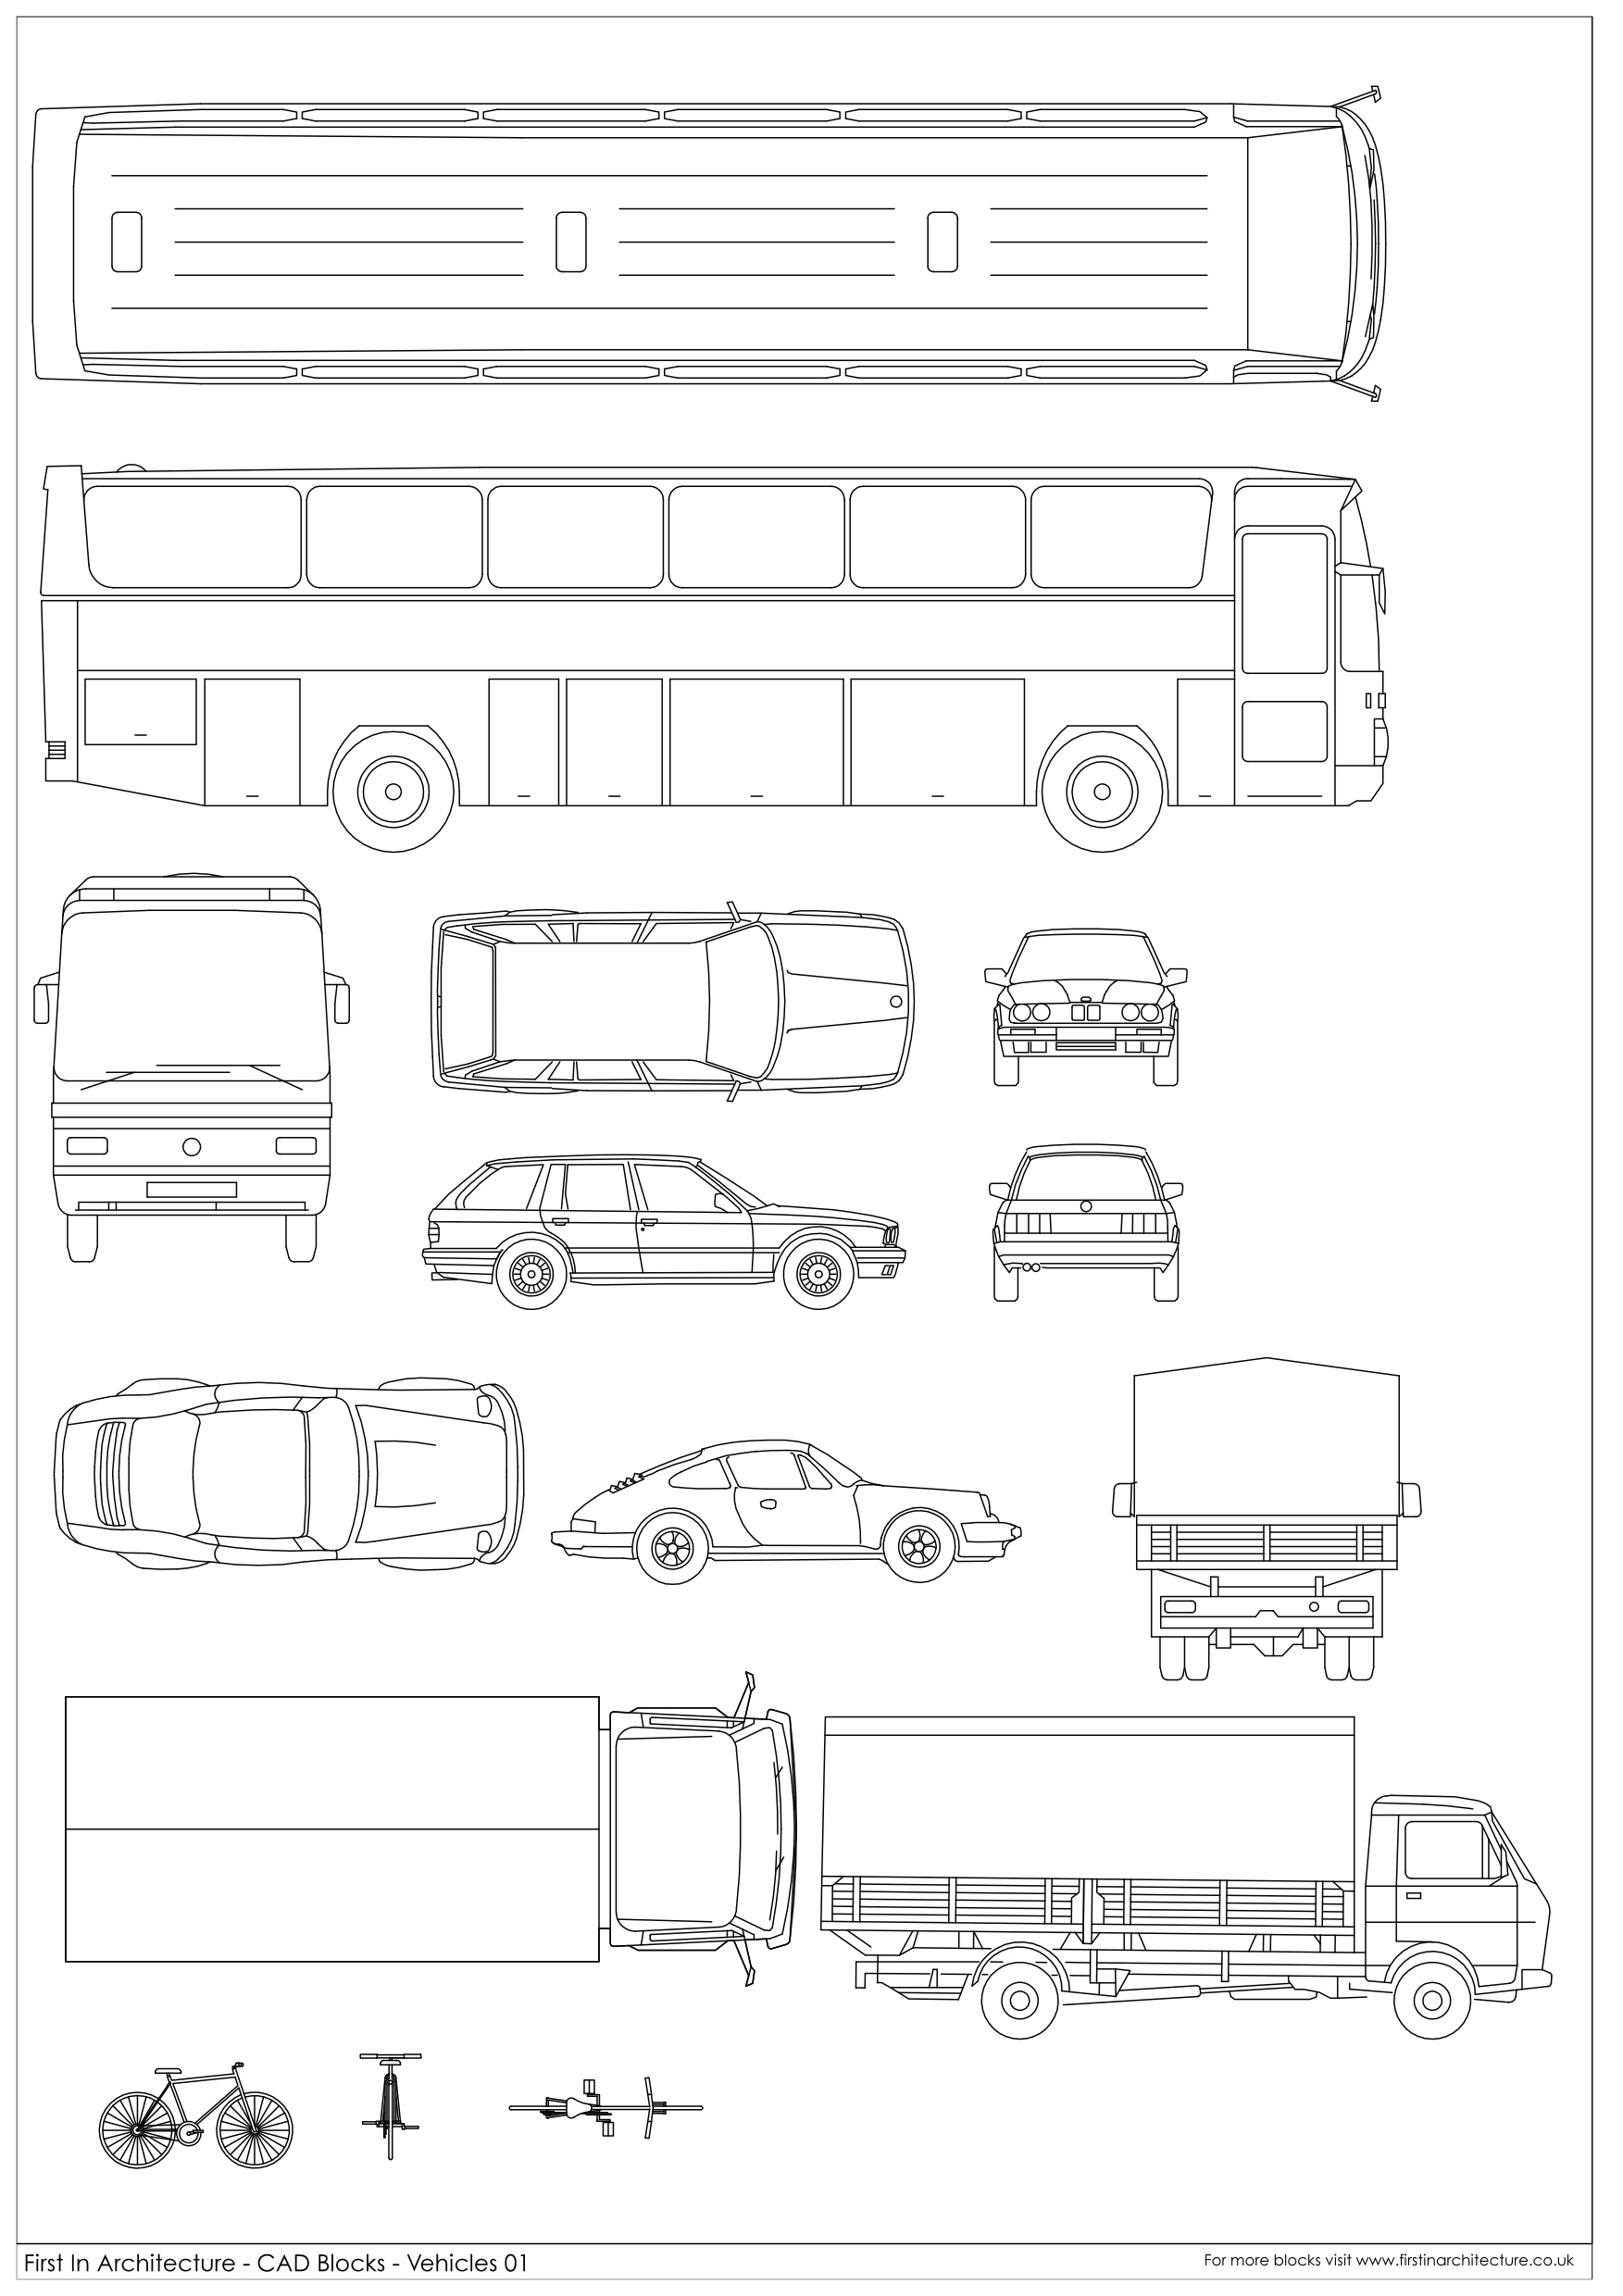 Cad blocks vehicles 01 first in architecture for Online cad drawing